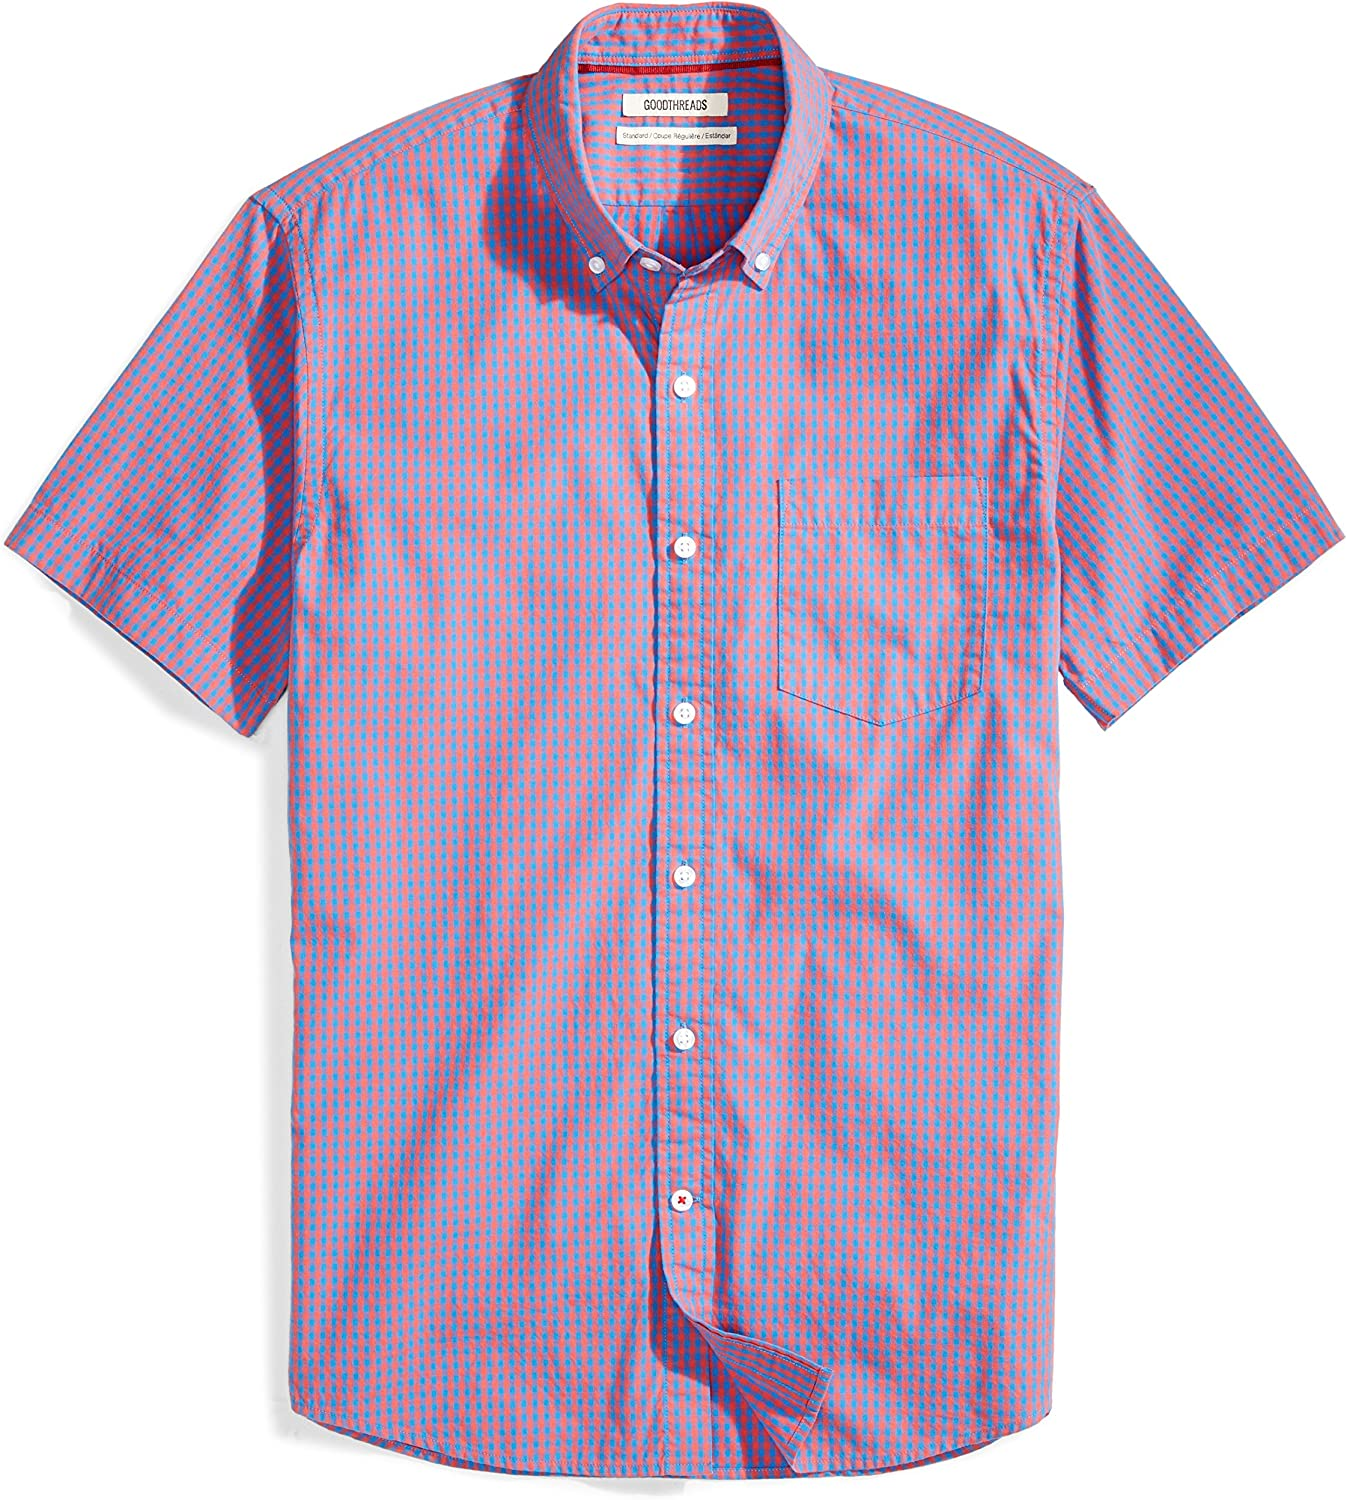 Mens Shirt Mens Fashion Standard-fit Short-Sleeve Dress Shirt